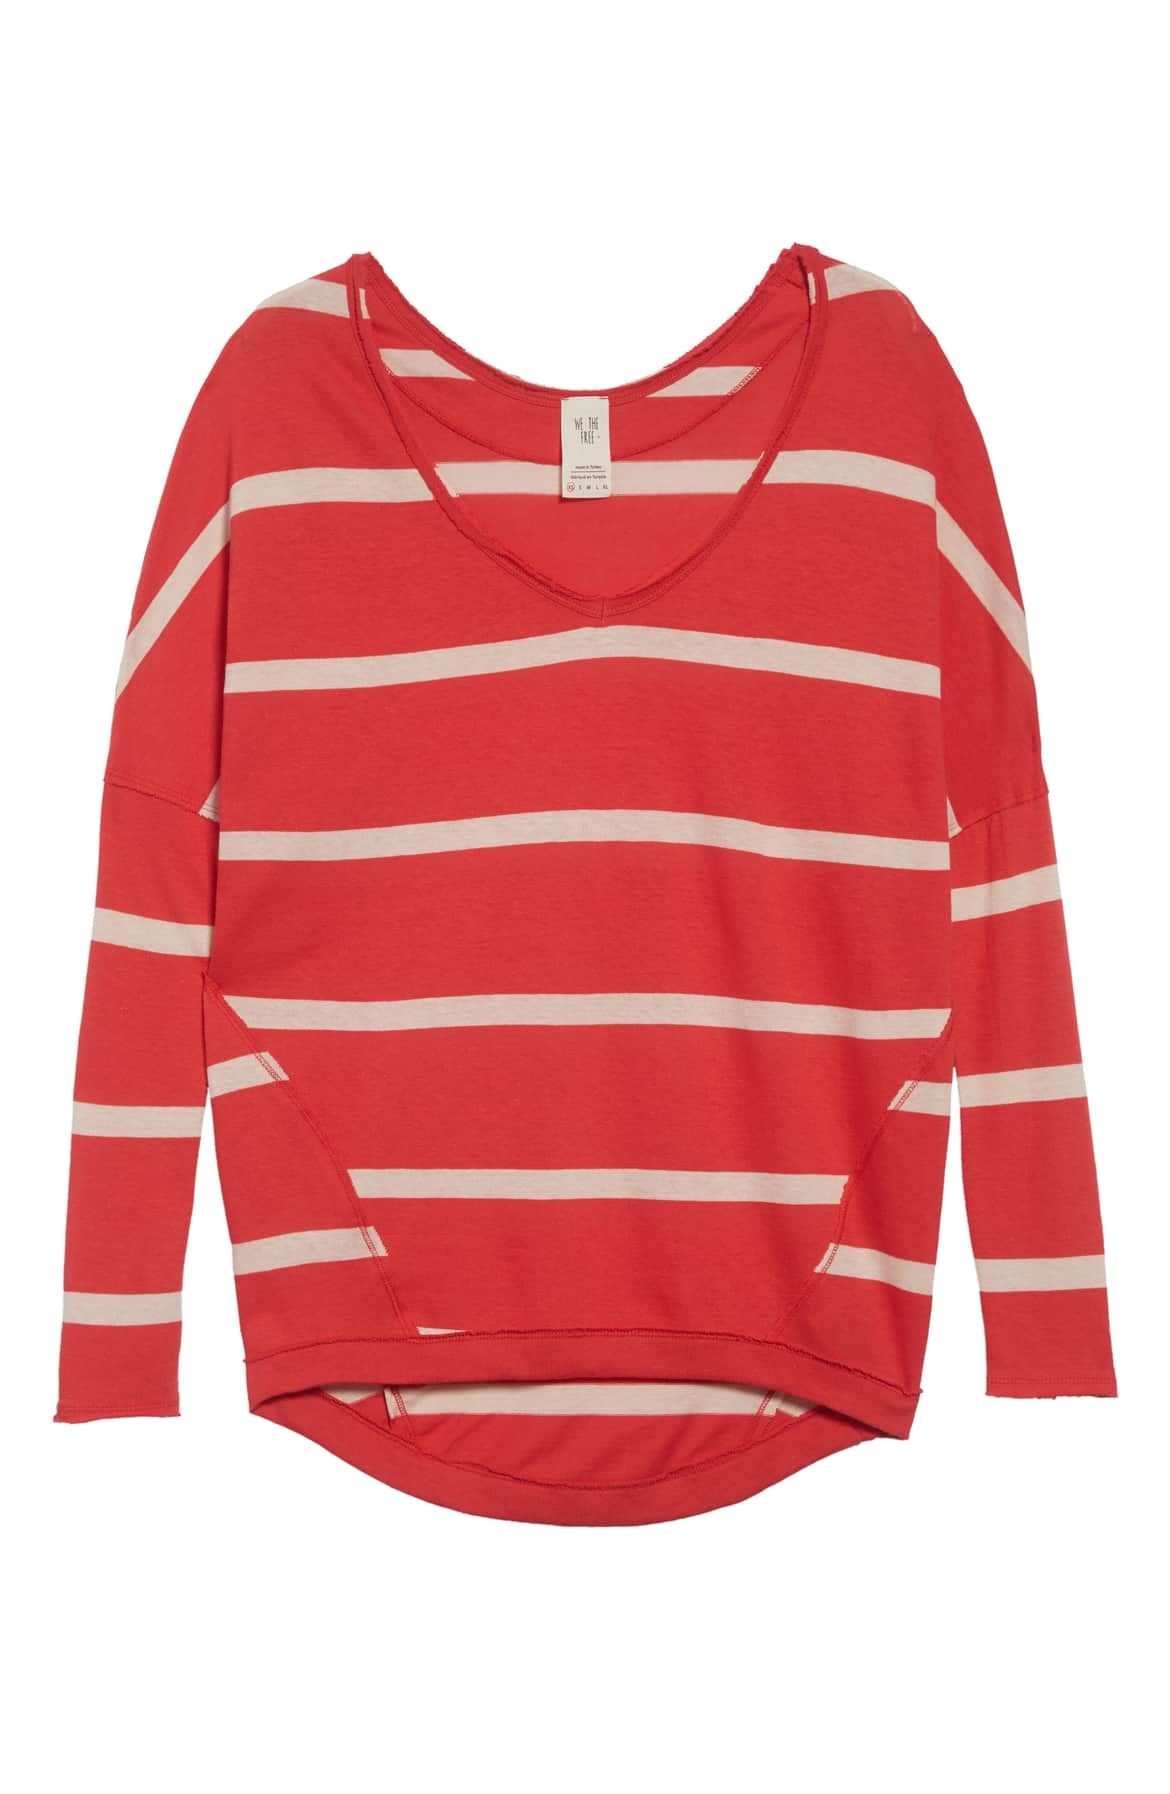 Free People Upstate Striped Long Sleeve Top Red - Gear Relapse